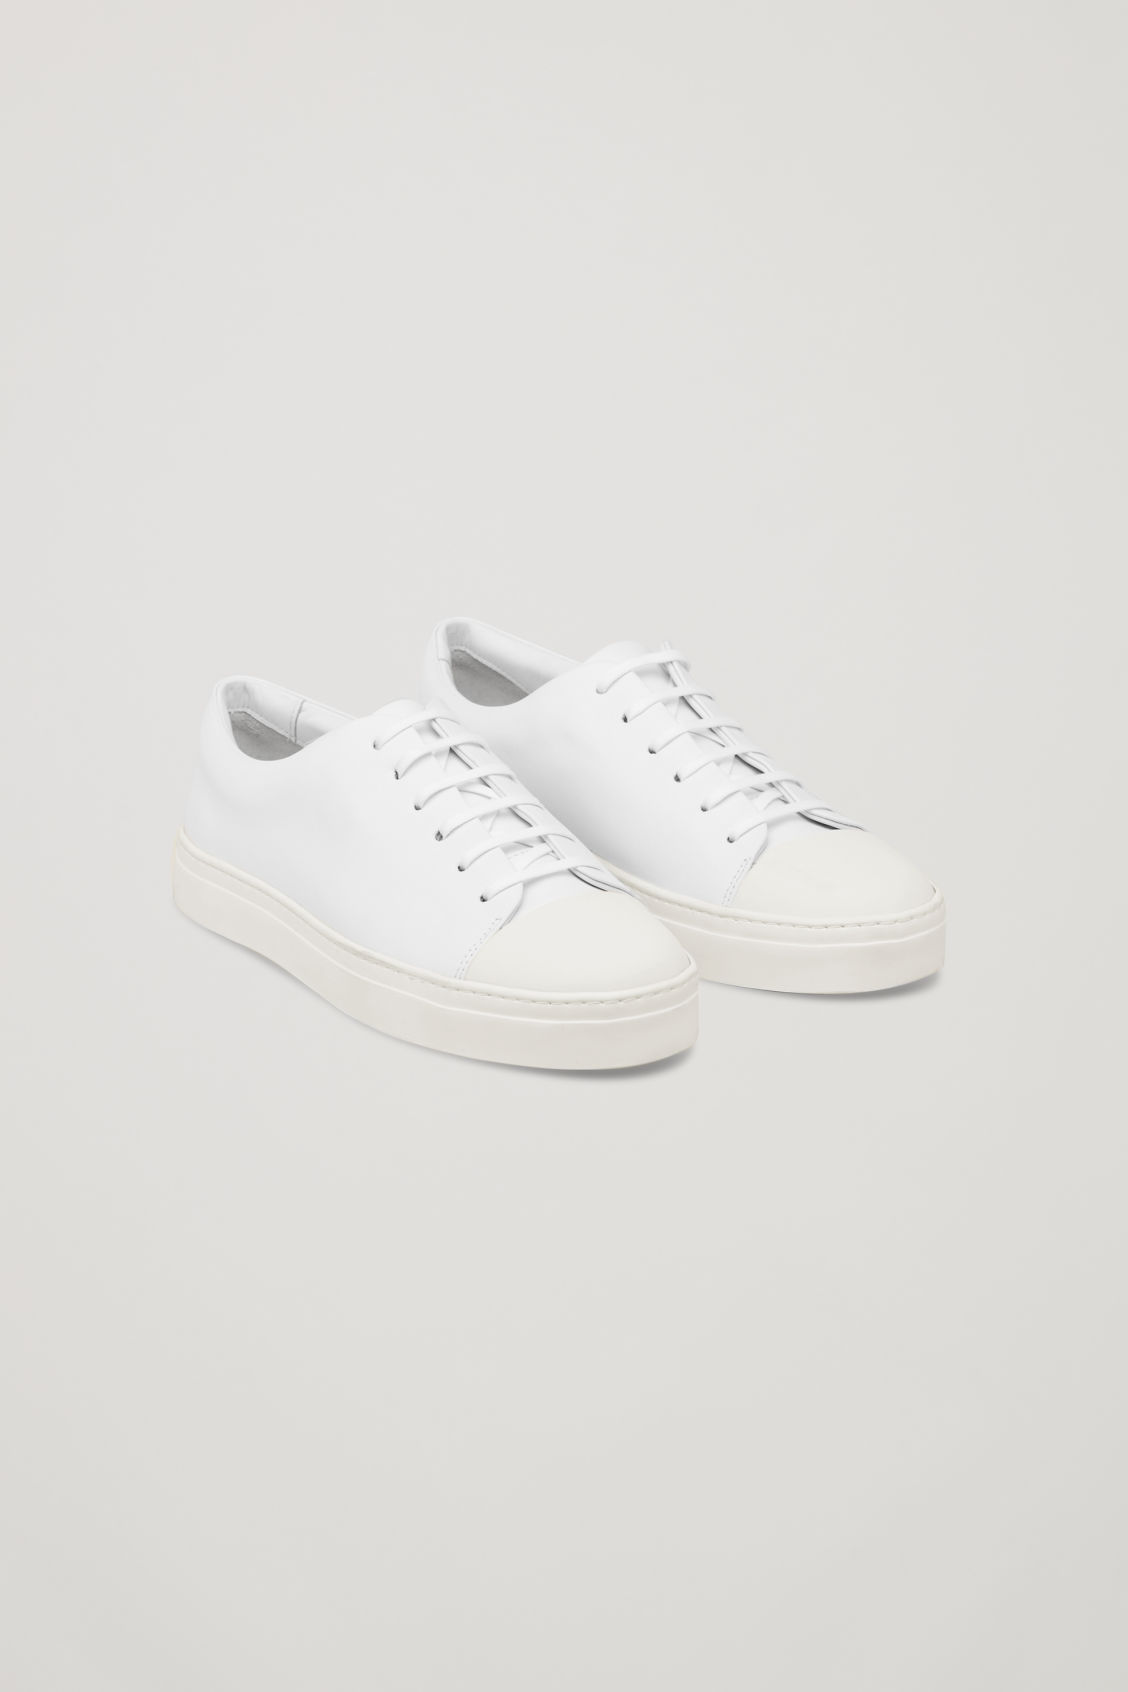 RUBBER-DETAILED LEATHER SNEAKERS